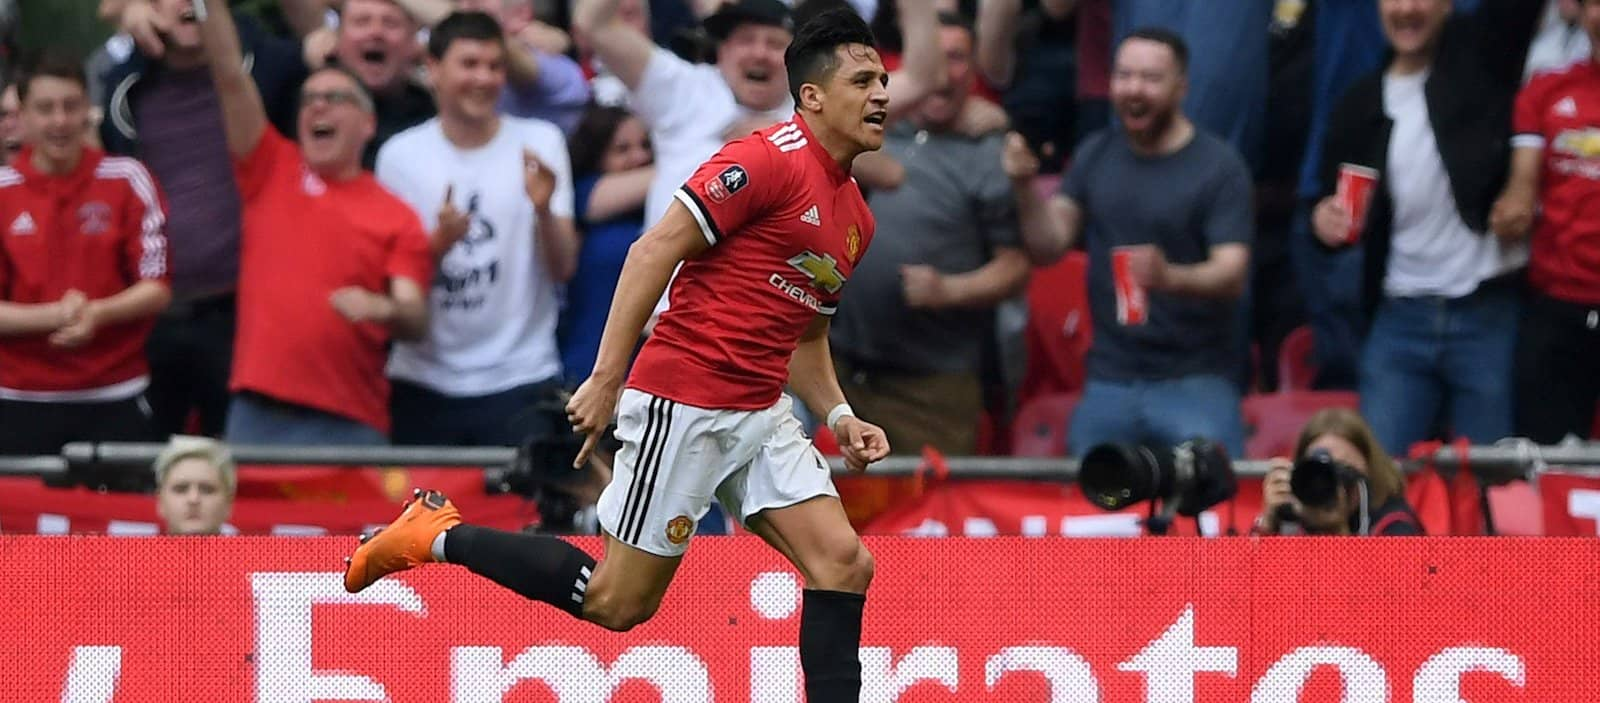 Prepare to see Alexis Sanchez back at his best at Manchester United next season